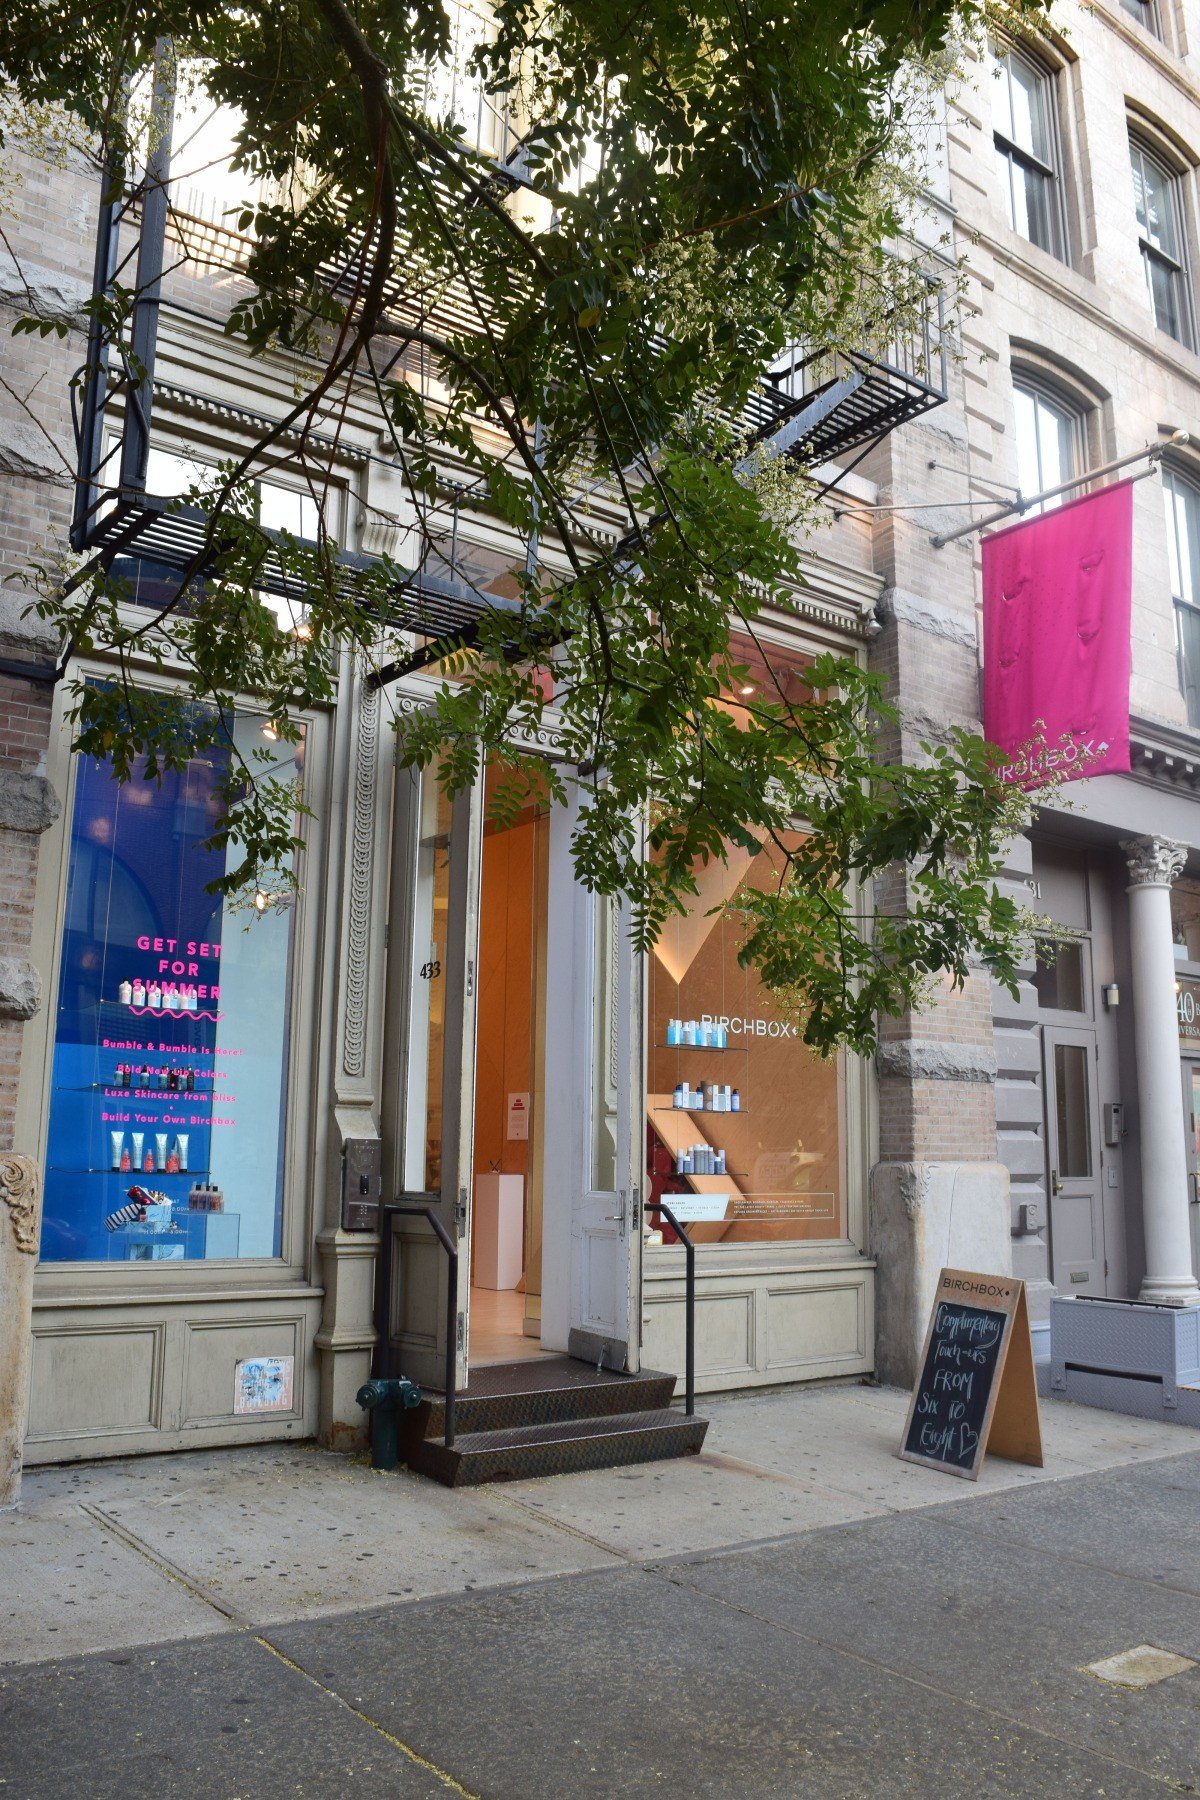 NYC Beauty & Fashion: The Birchbox Flagship Store